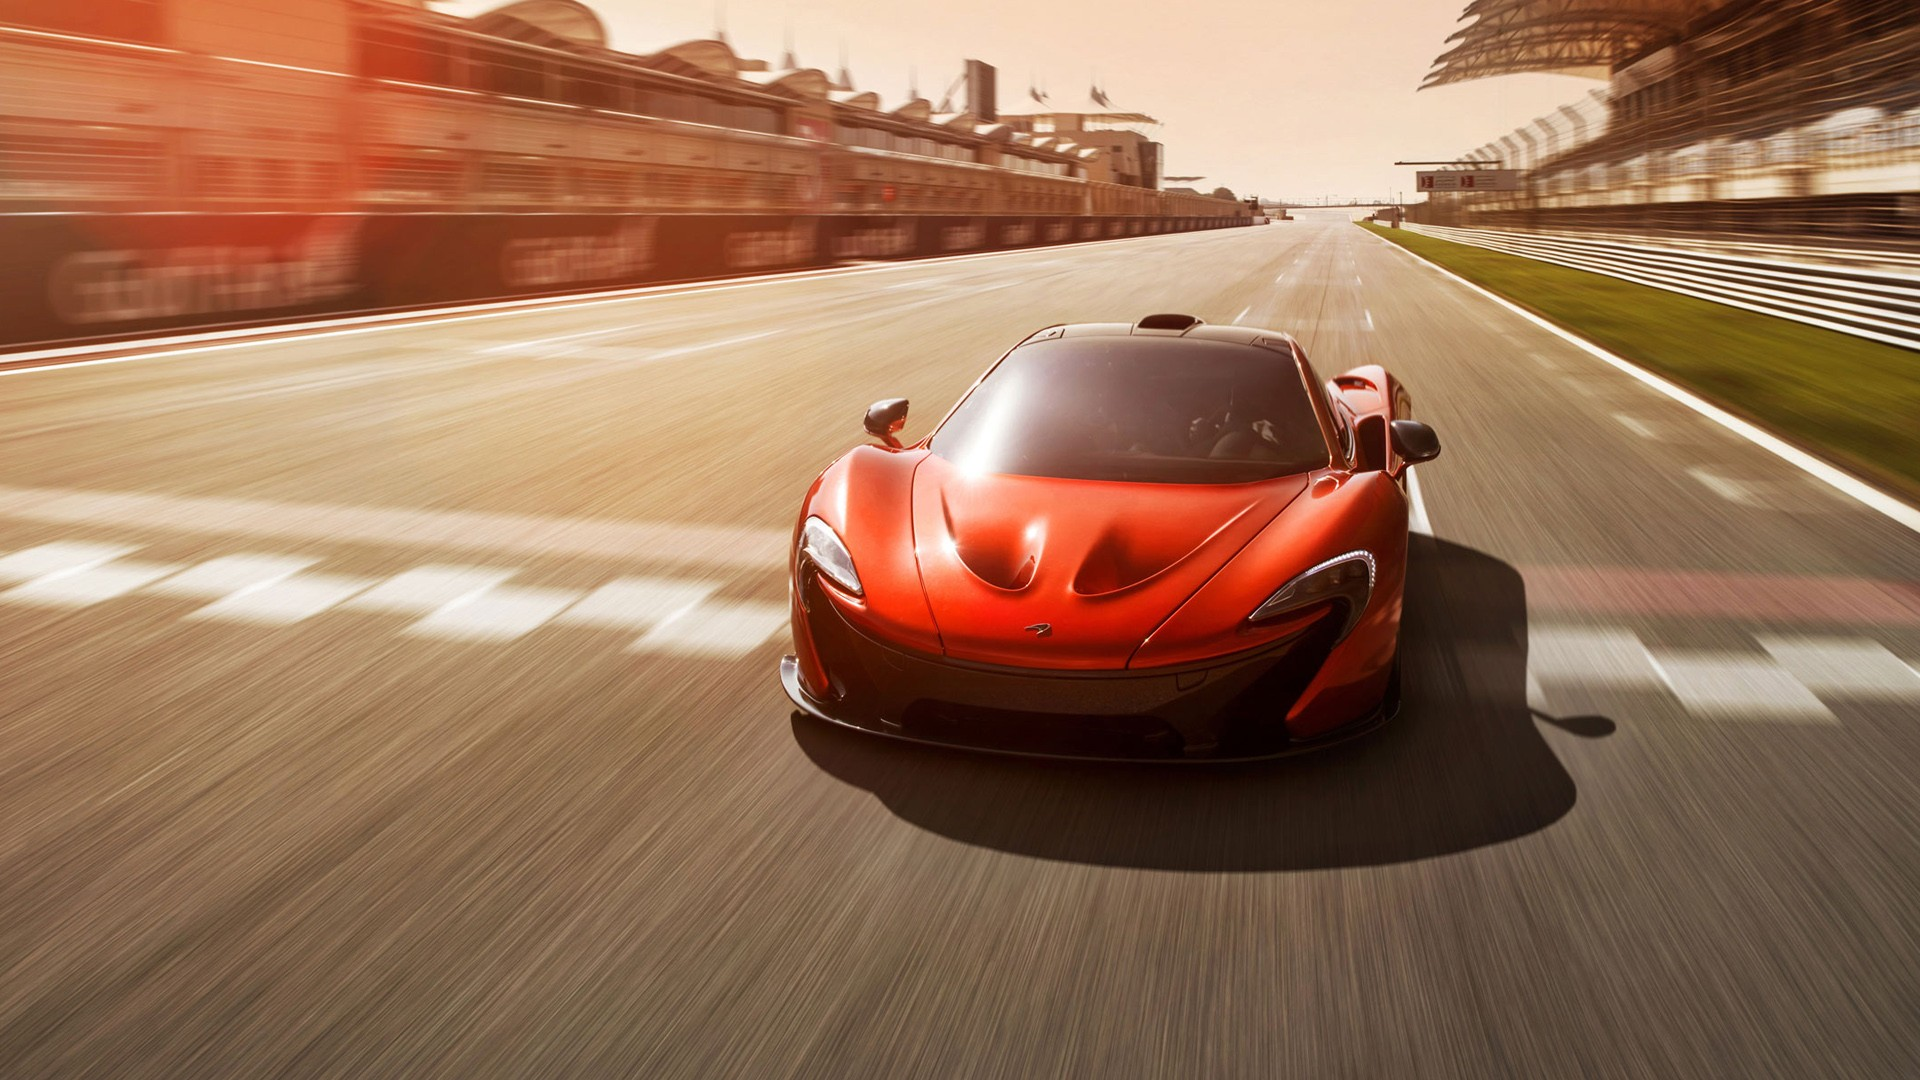 Hd Bmw Car Wallpapers 1920x1080 Mclaren P1 Concept 2 Wallpaper Hd Car Wallpapers Id 3387